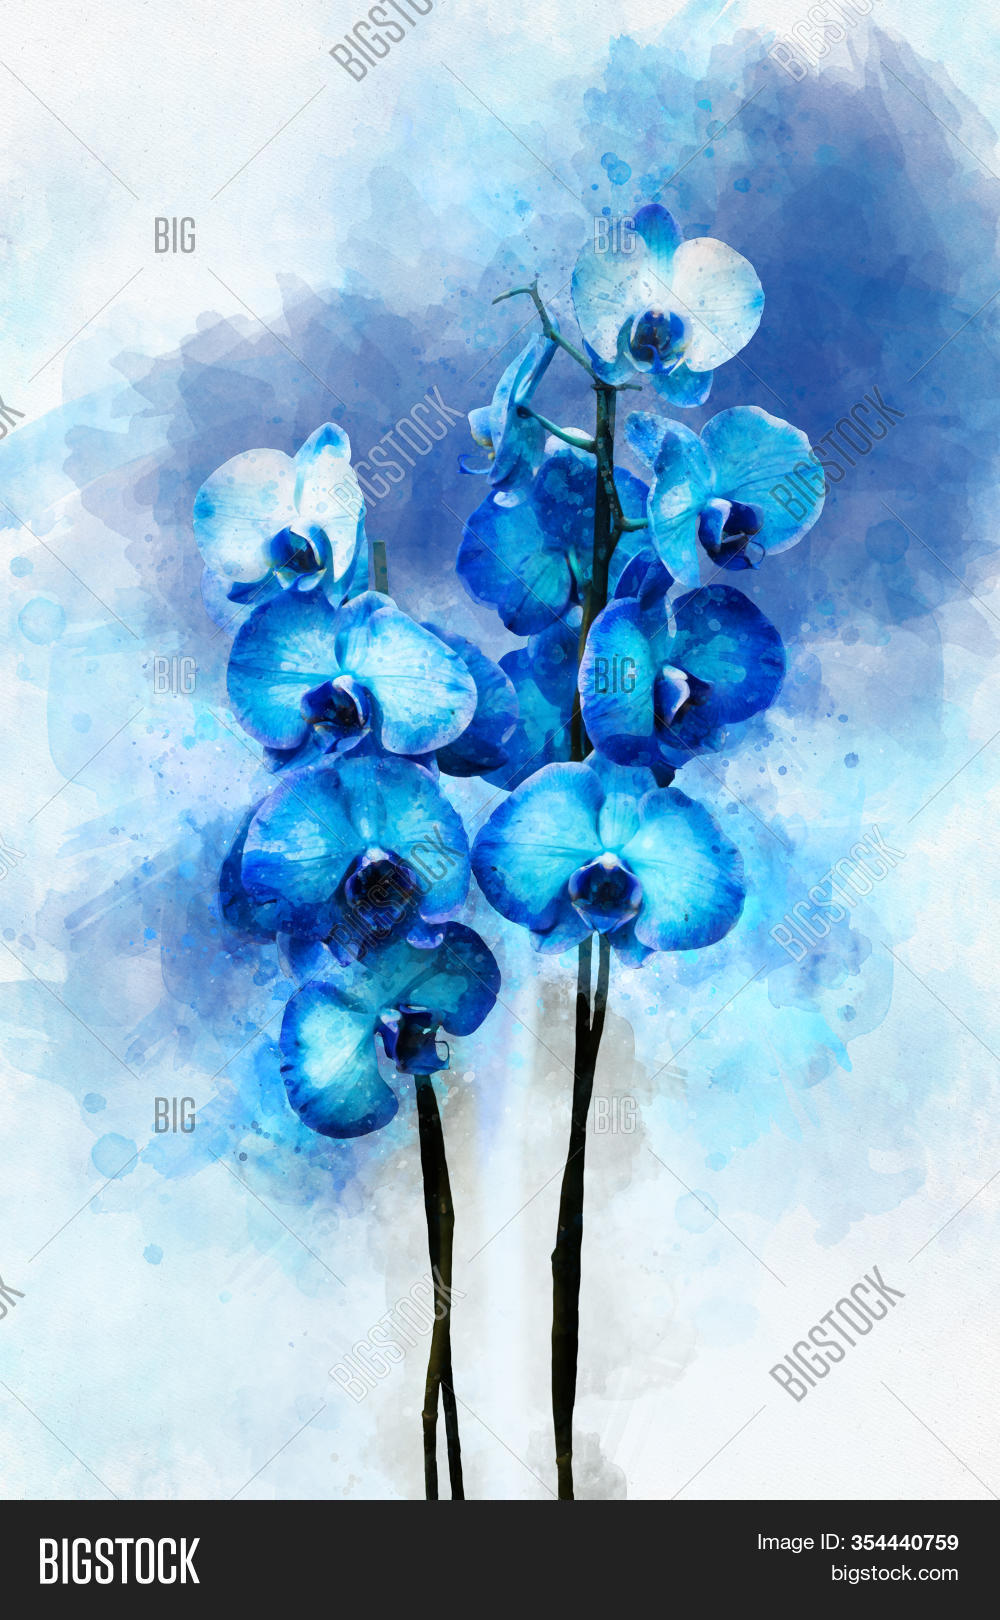 Tropical Blue Orchid Image Photo Free Trial Bigstock